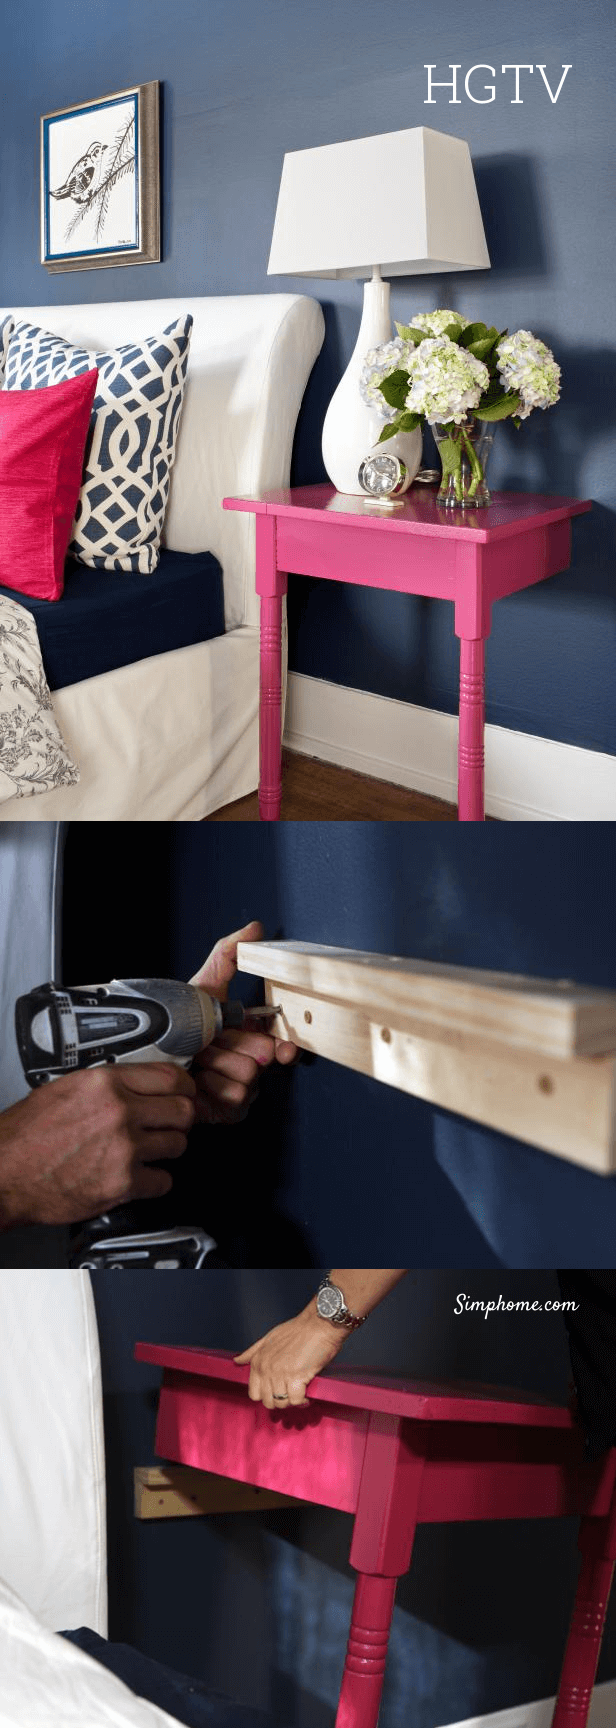 Creative and Chic DIY Nightstands 28 Simphome com p